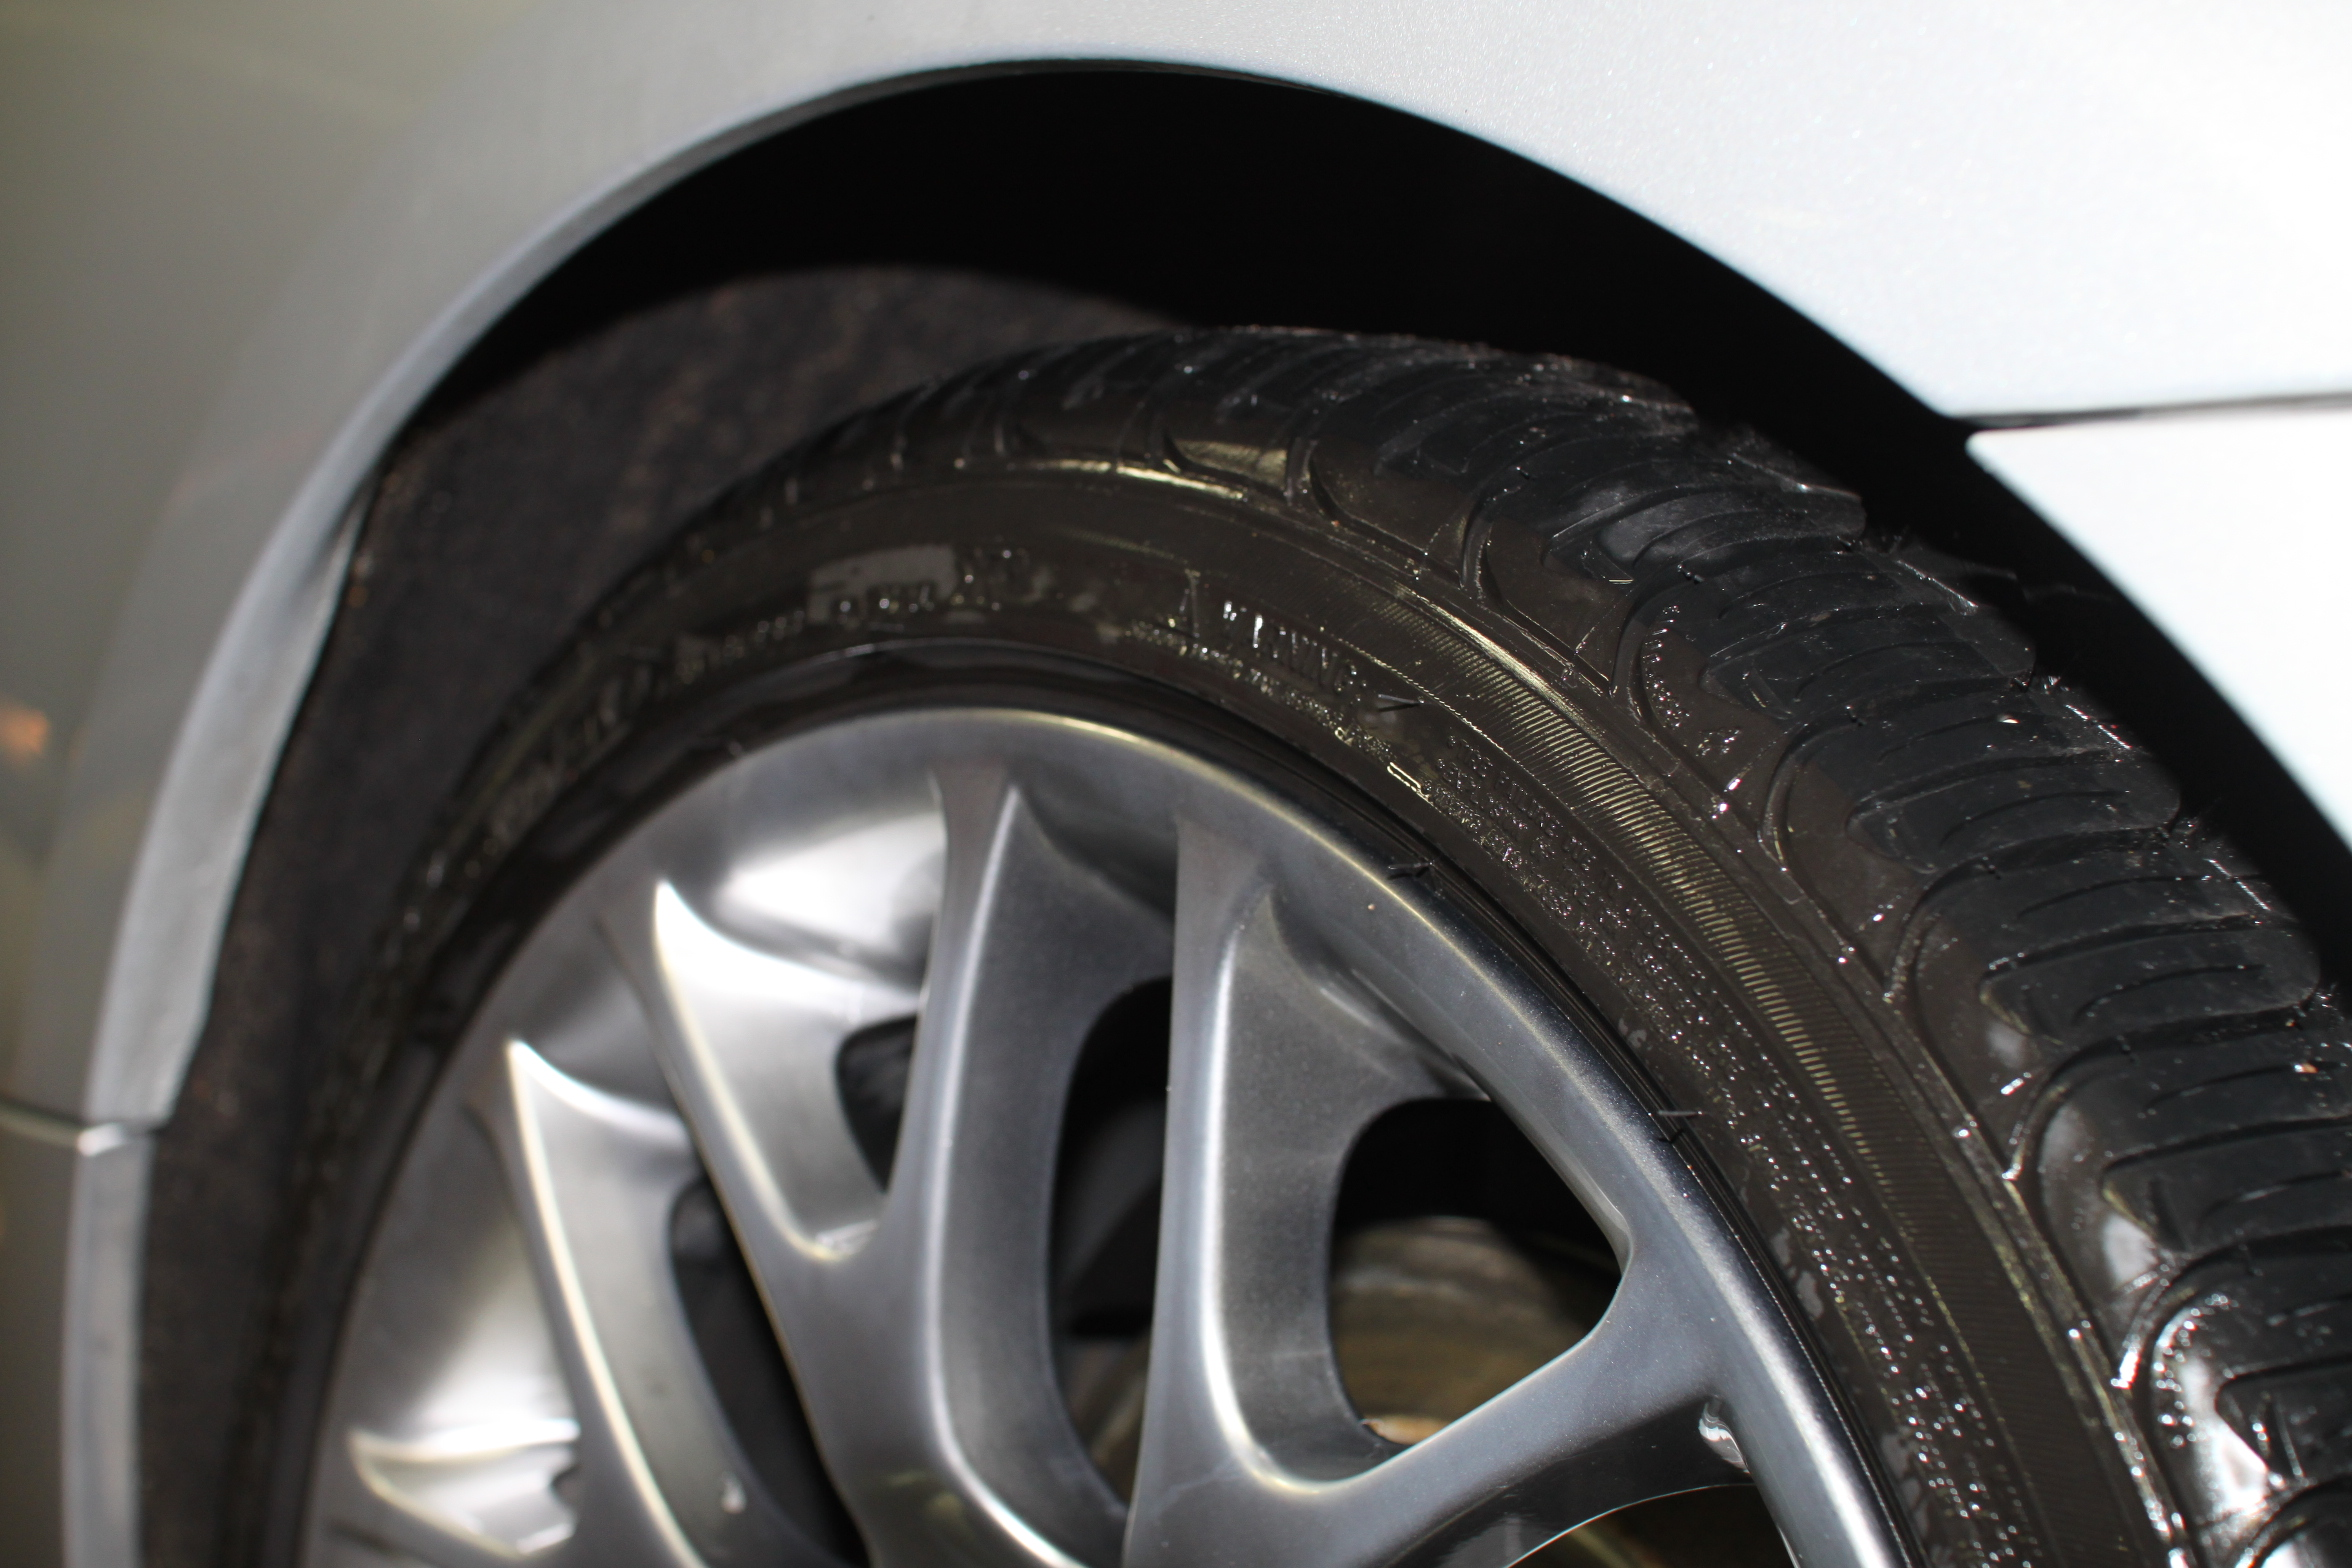 High quality tire shine, with silicone, leaves the tires with a wet look...